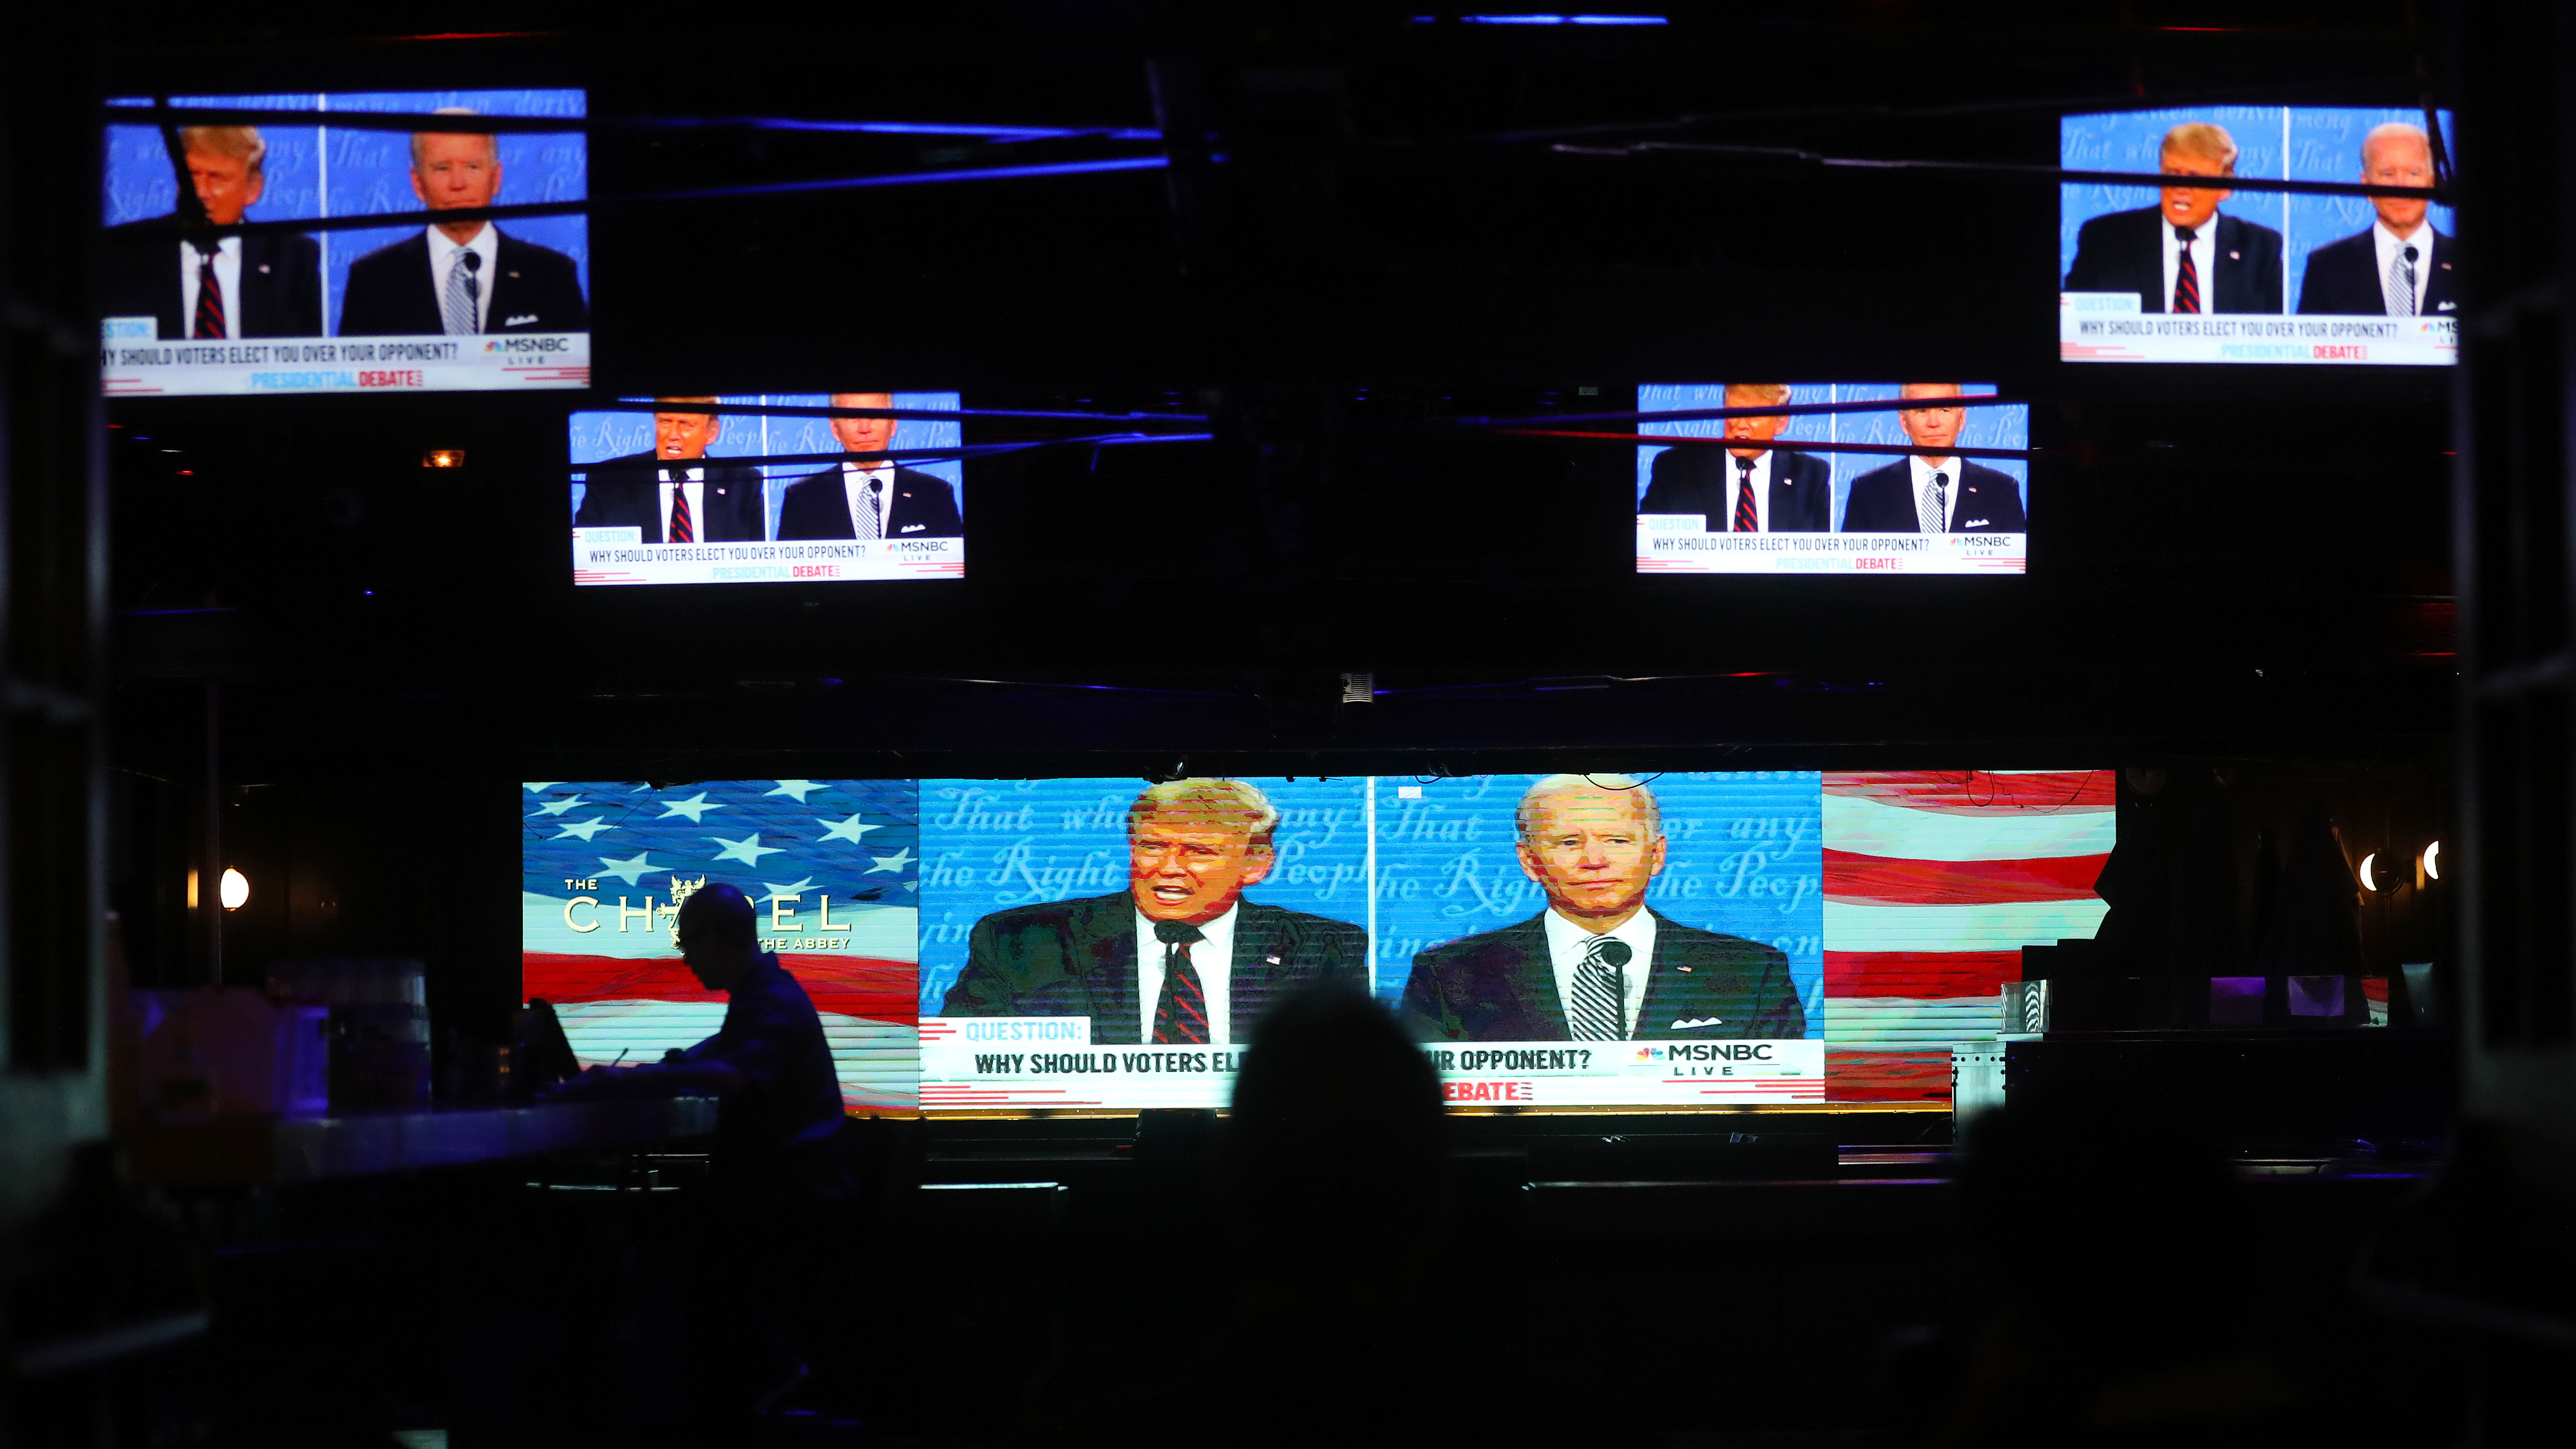 A broadcast of the first debate between President Trump and Democratic nominee Joe Biden is played on TVs at The Abbey in West Hollywood, Calif.